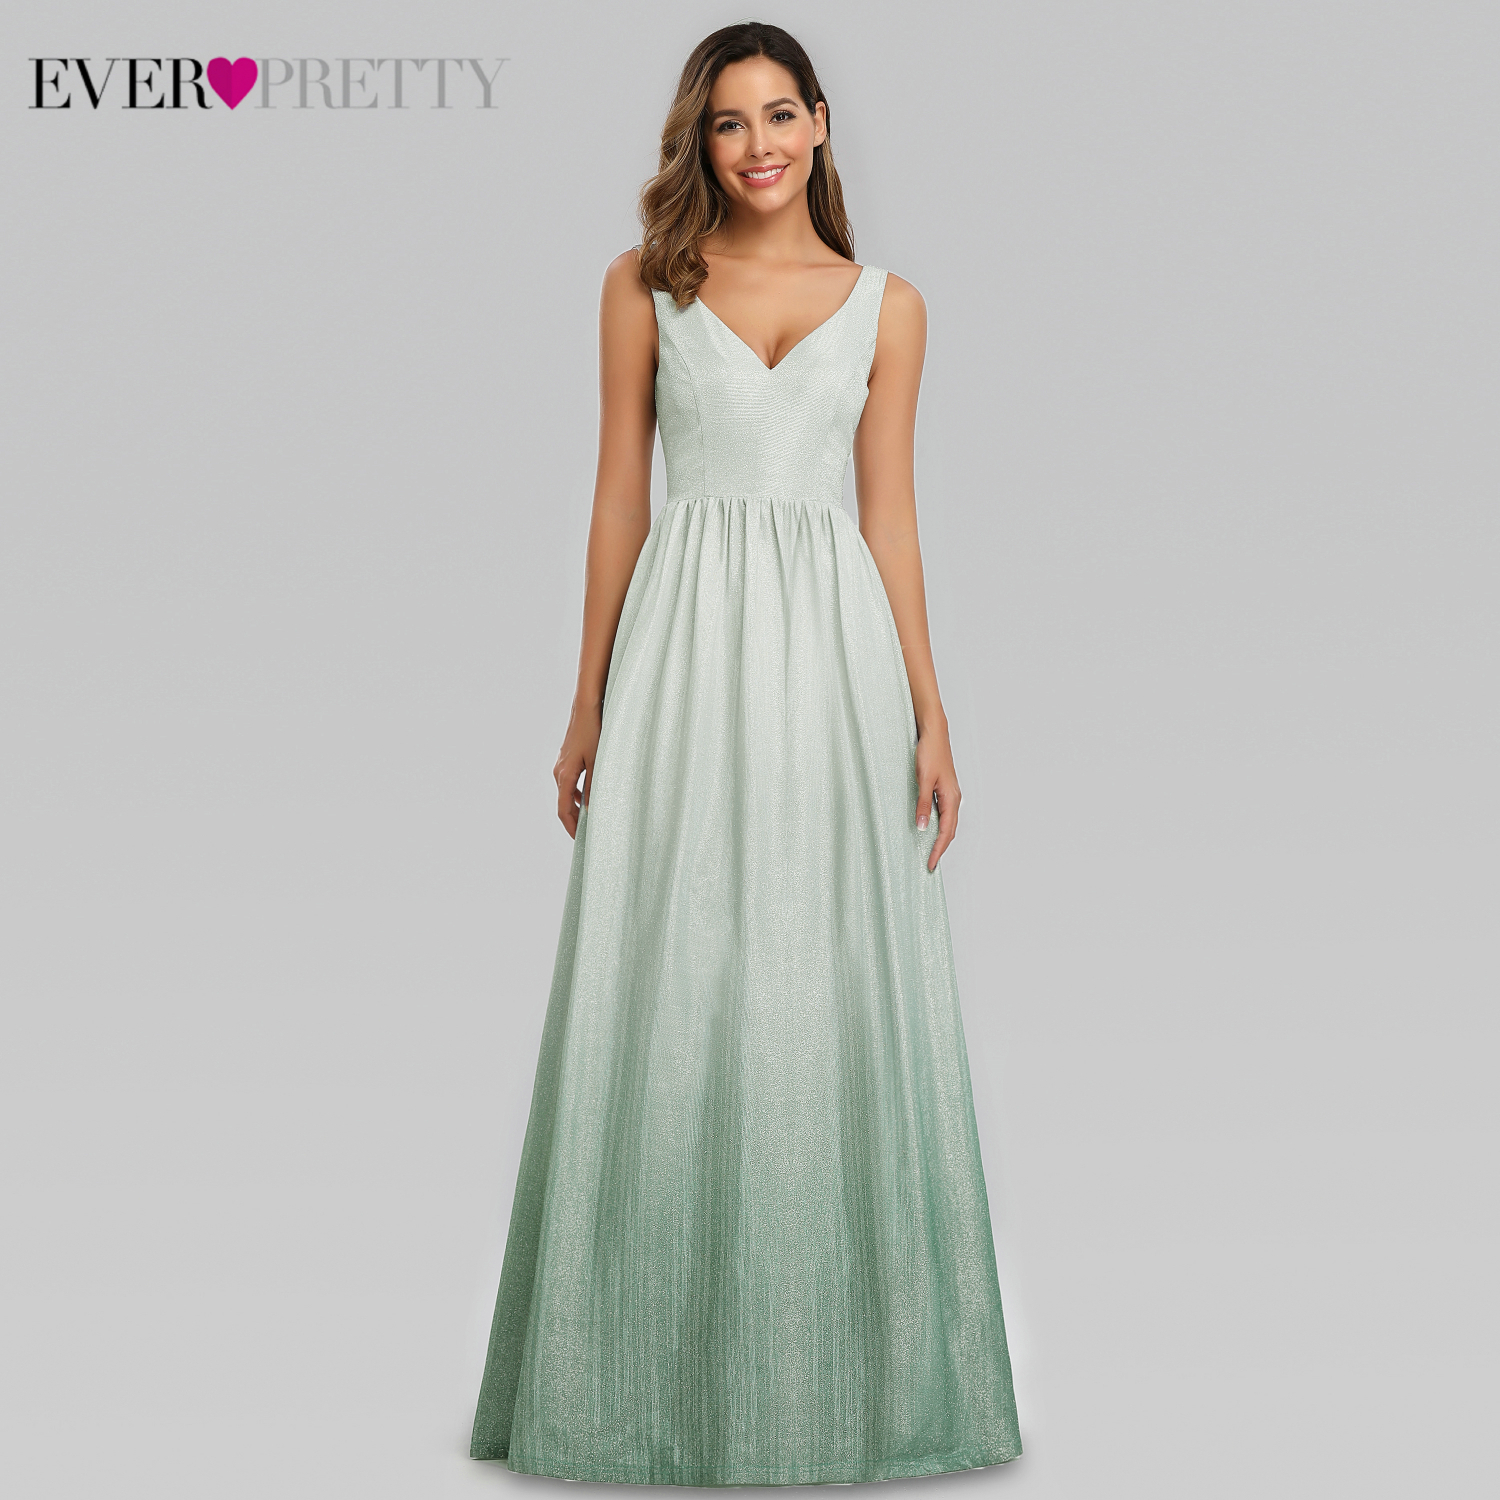 Elegant Emerald Green Prom Dresses Long Ever Pretty EP00988EM A-Line V-Neck Sexy Sparkle Party Gowns Gala Jurken Dames 2019